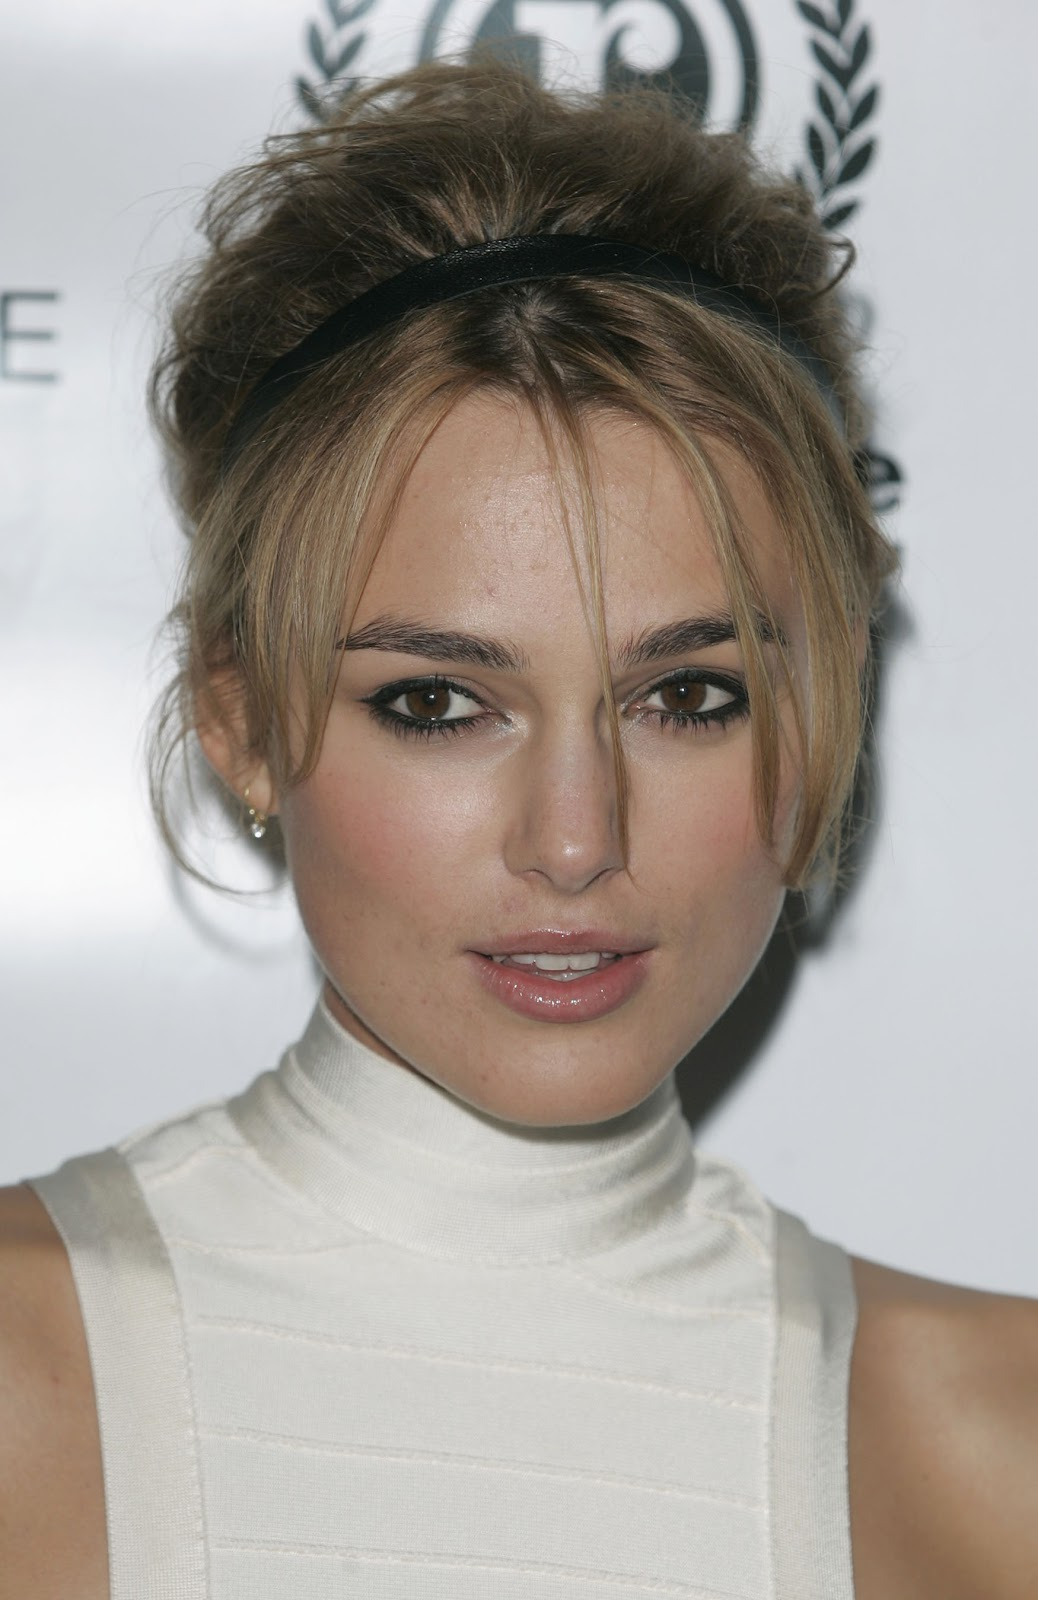 Keira Knightley: biography and career | Film Actresses